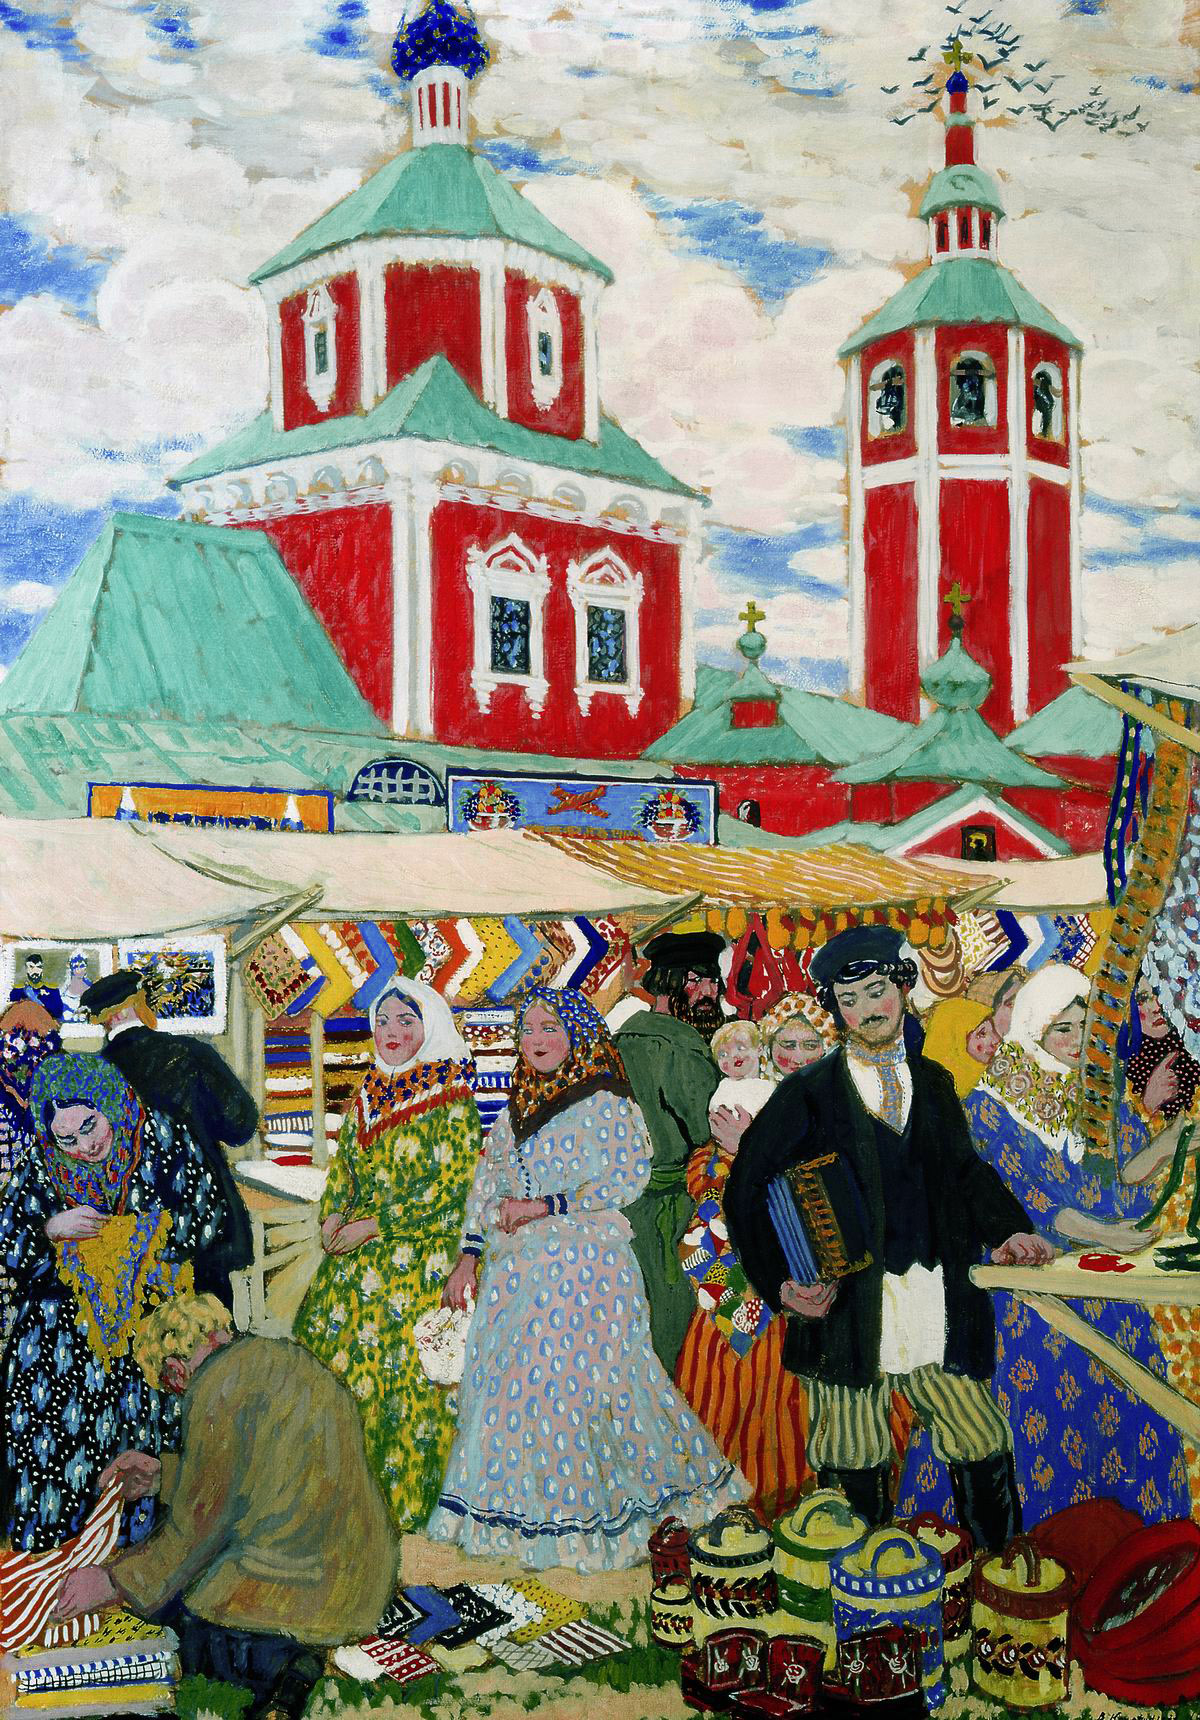 https://i2.wp.com/upload.wikimedia.org/wikipedia/commons/5/5e/Kustodiyev_fair.JPG